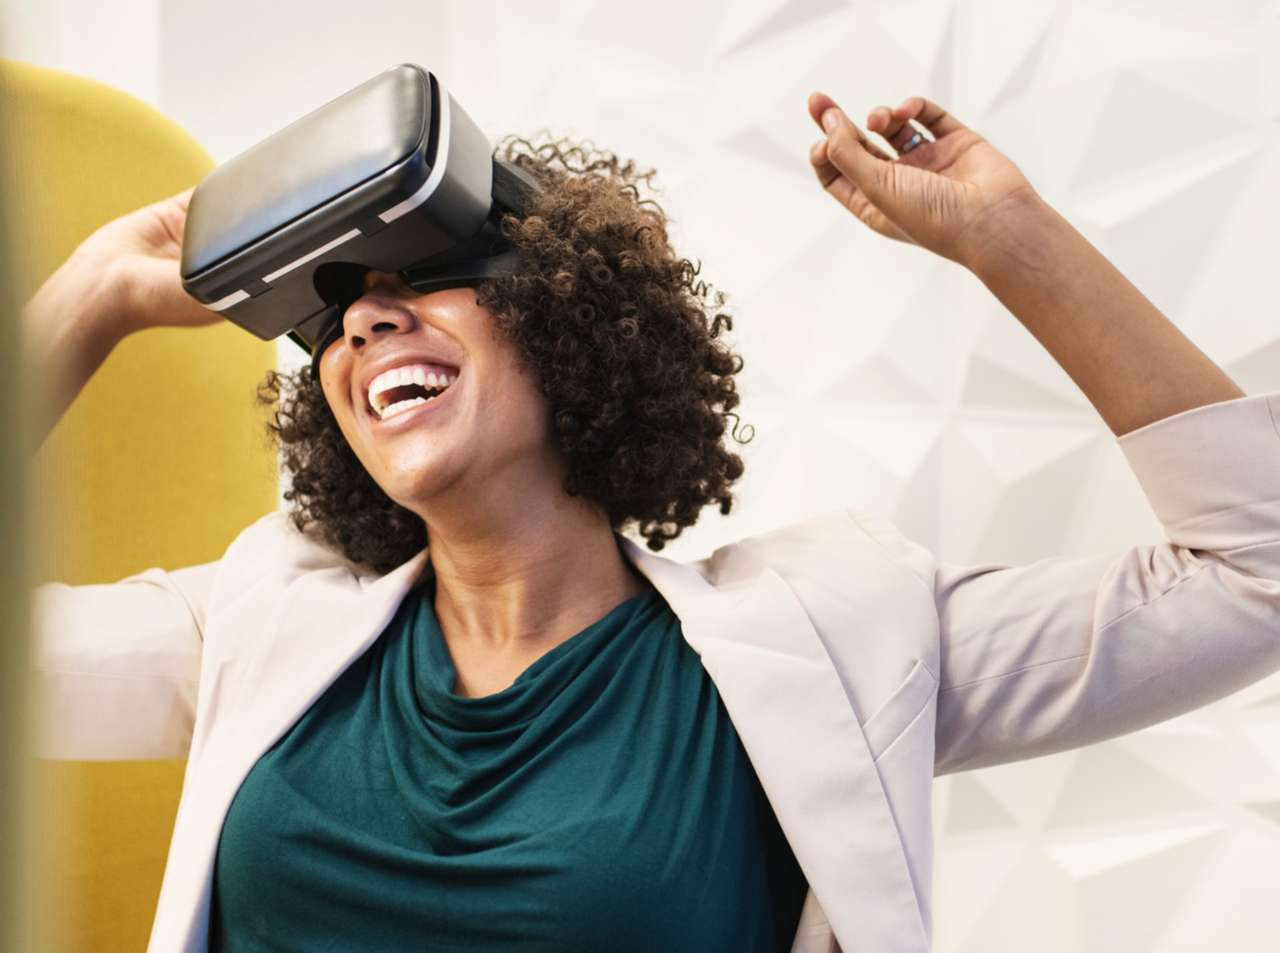 How Augmented and Virtual Reality is Playing a Major Role in Surgery